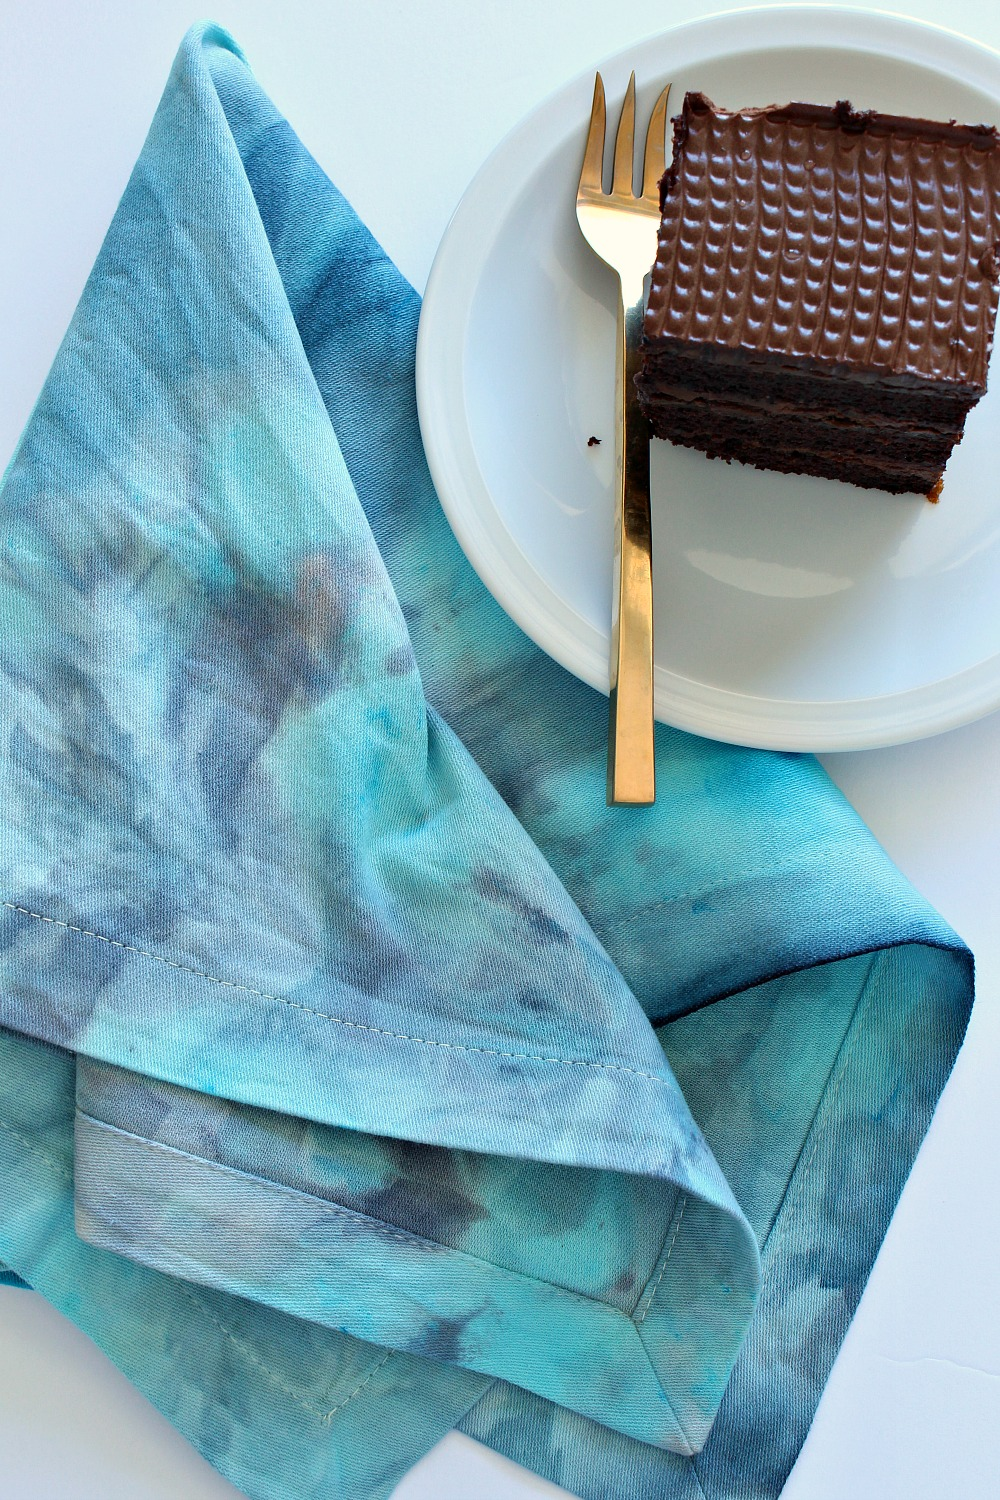 Ice Dyed Napkin DIY | @danslelakehouse